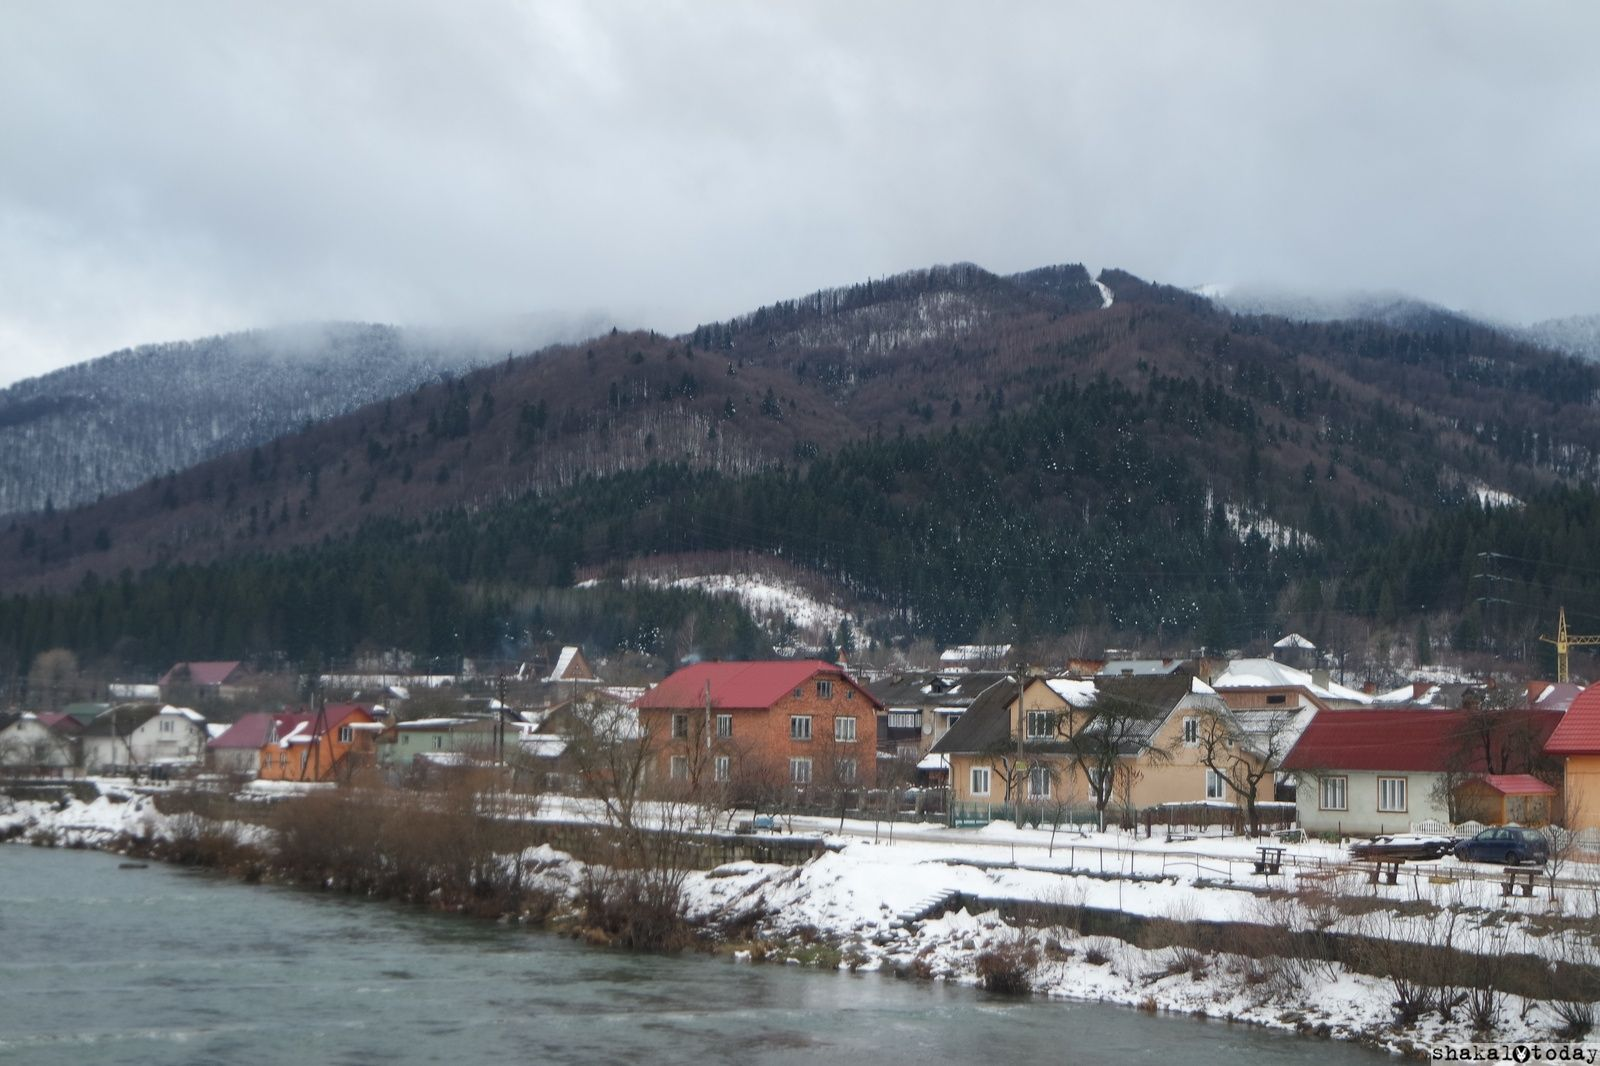 Shakal-Today-Scole-009.JPG